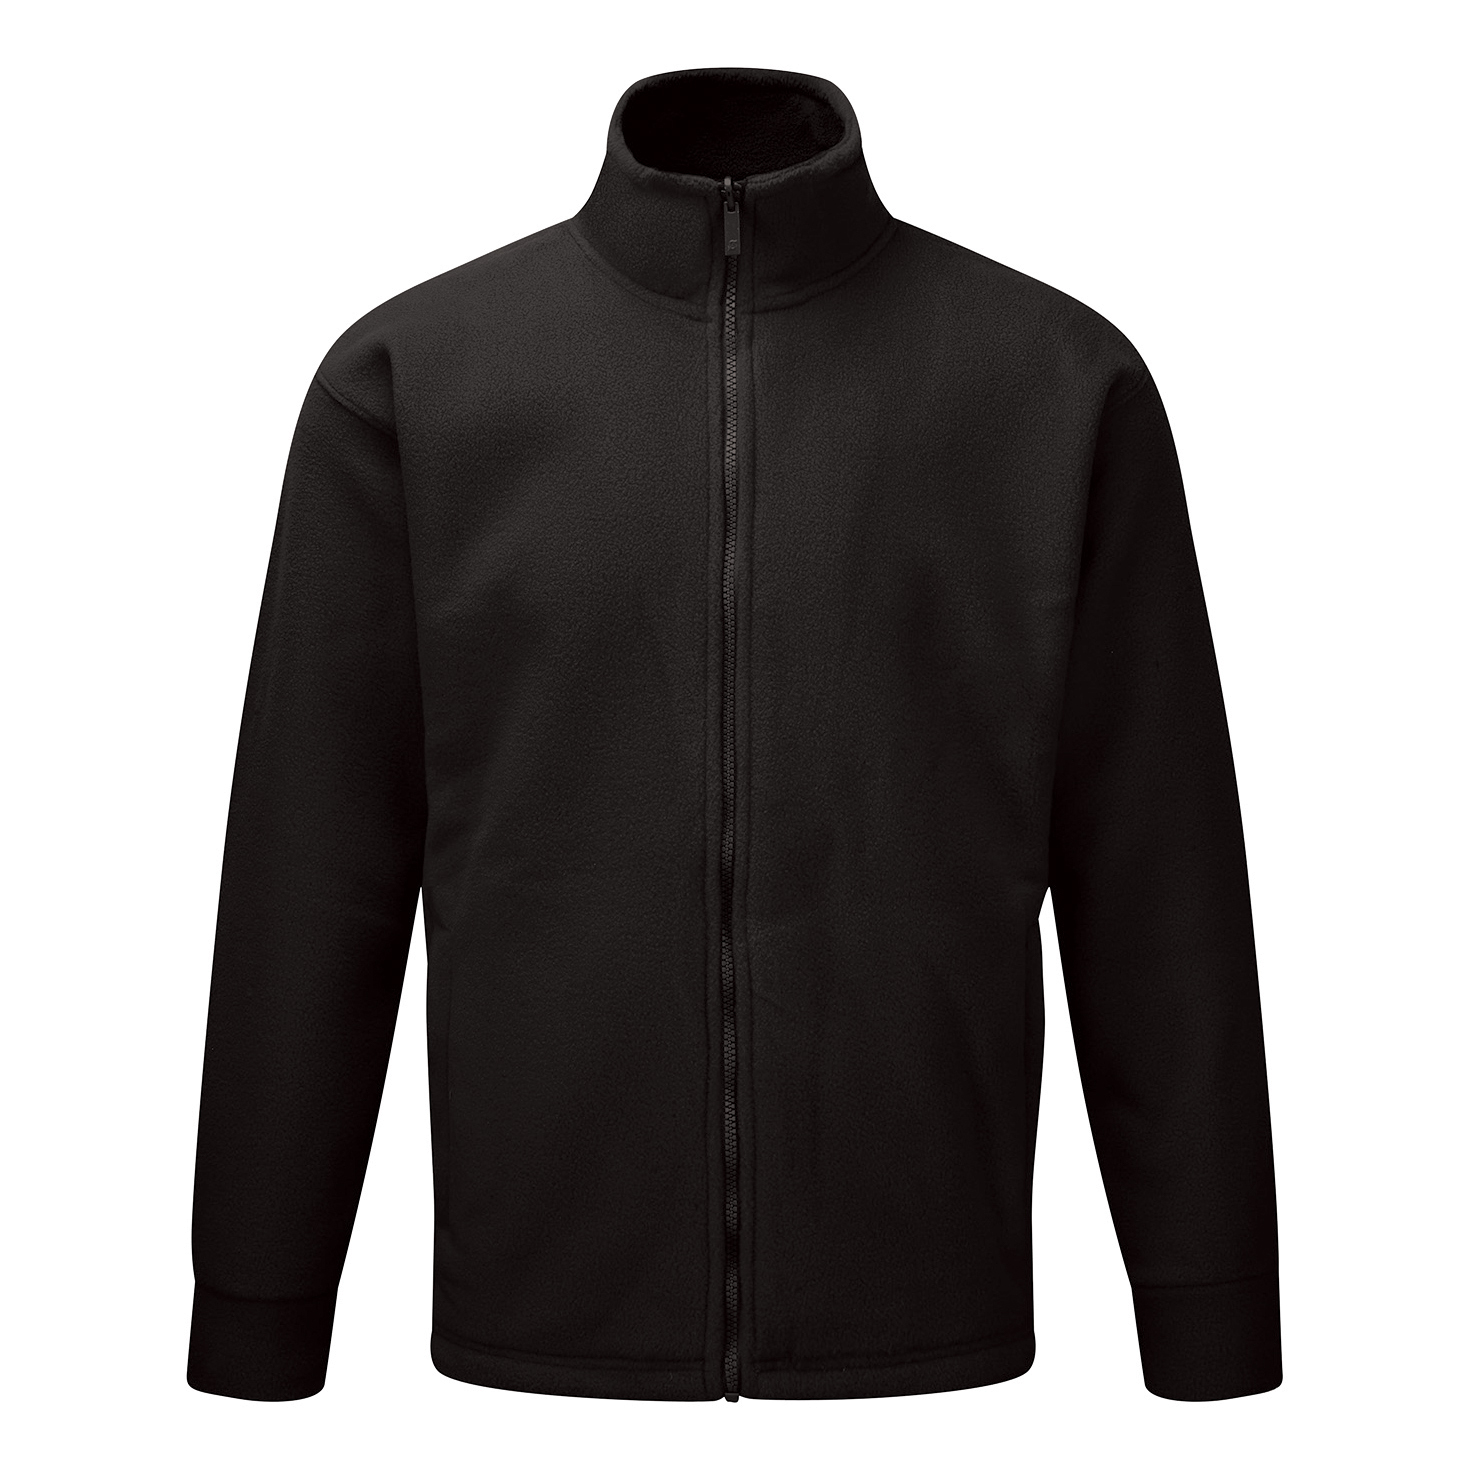 Classic Fleece Jacket Elasticated Cuffs Full Zip Front 3XL Black Ref FLJBL3XL *1-3 Days Lead Time*